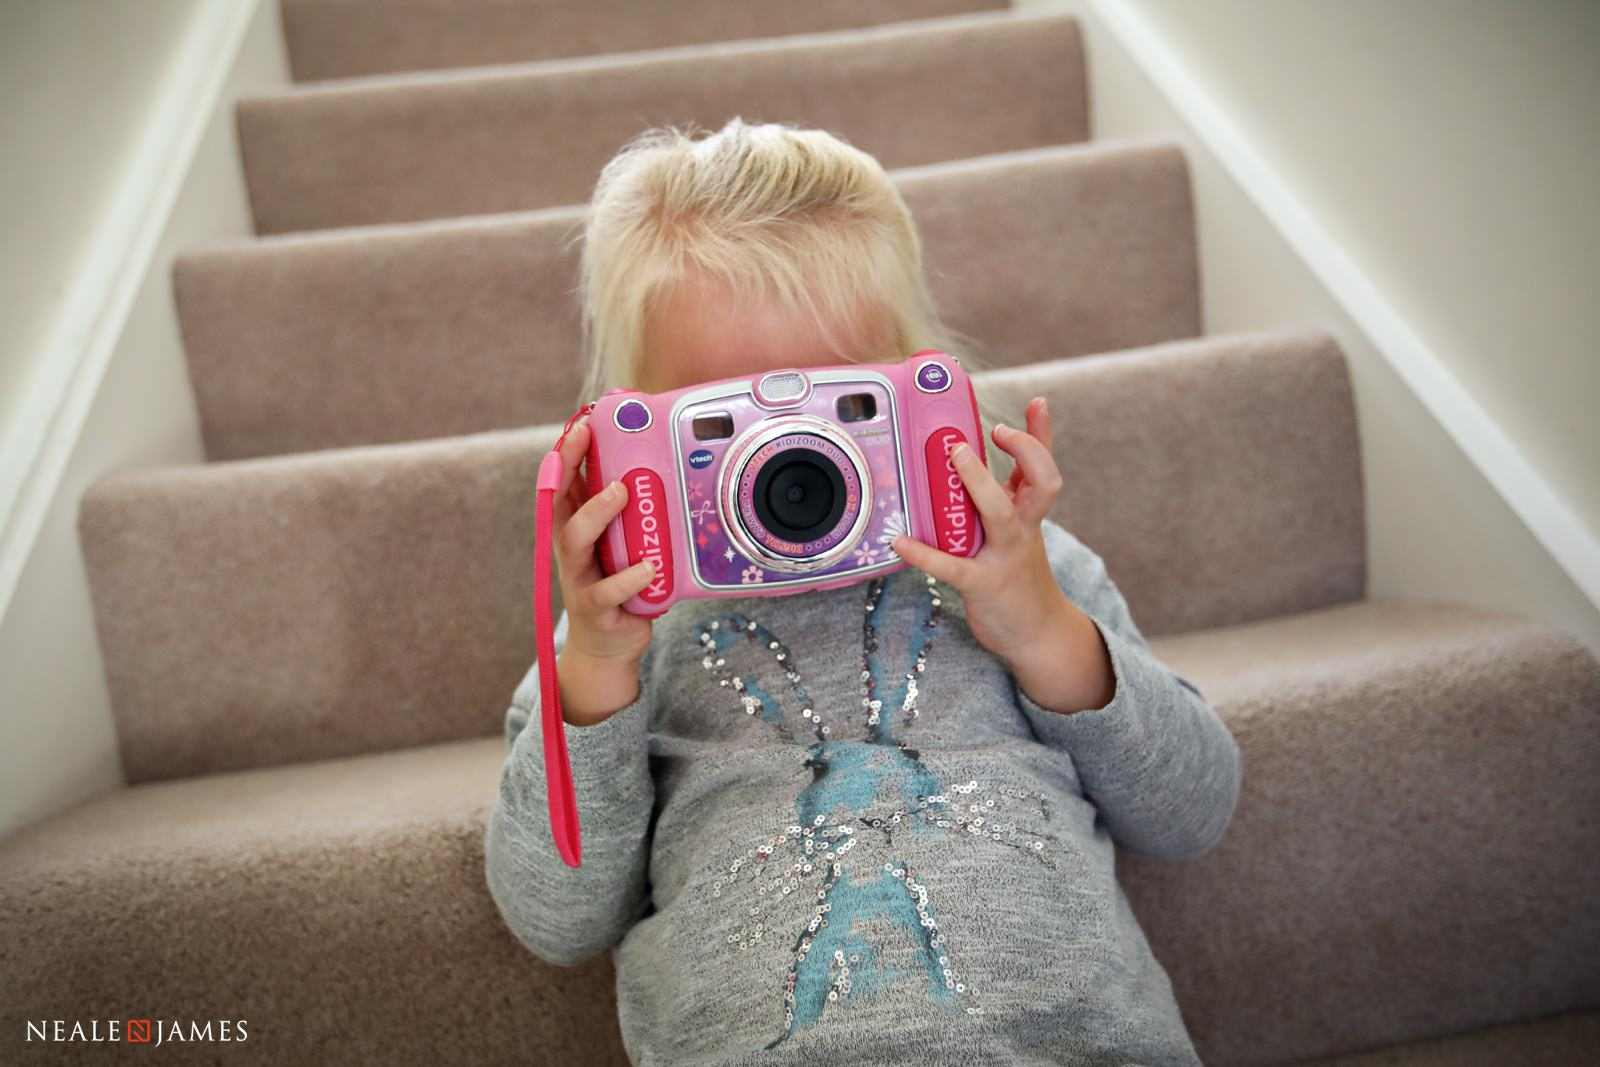 A colour photo of a girl taking a picture